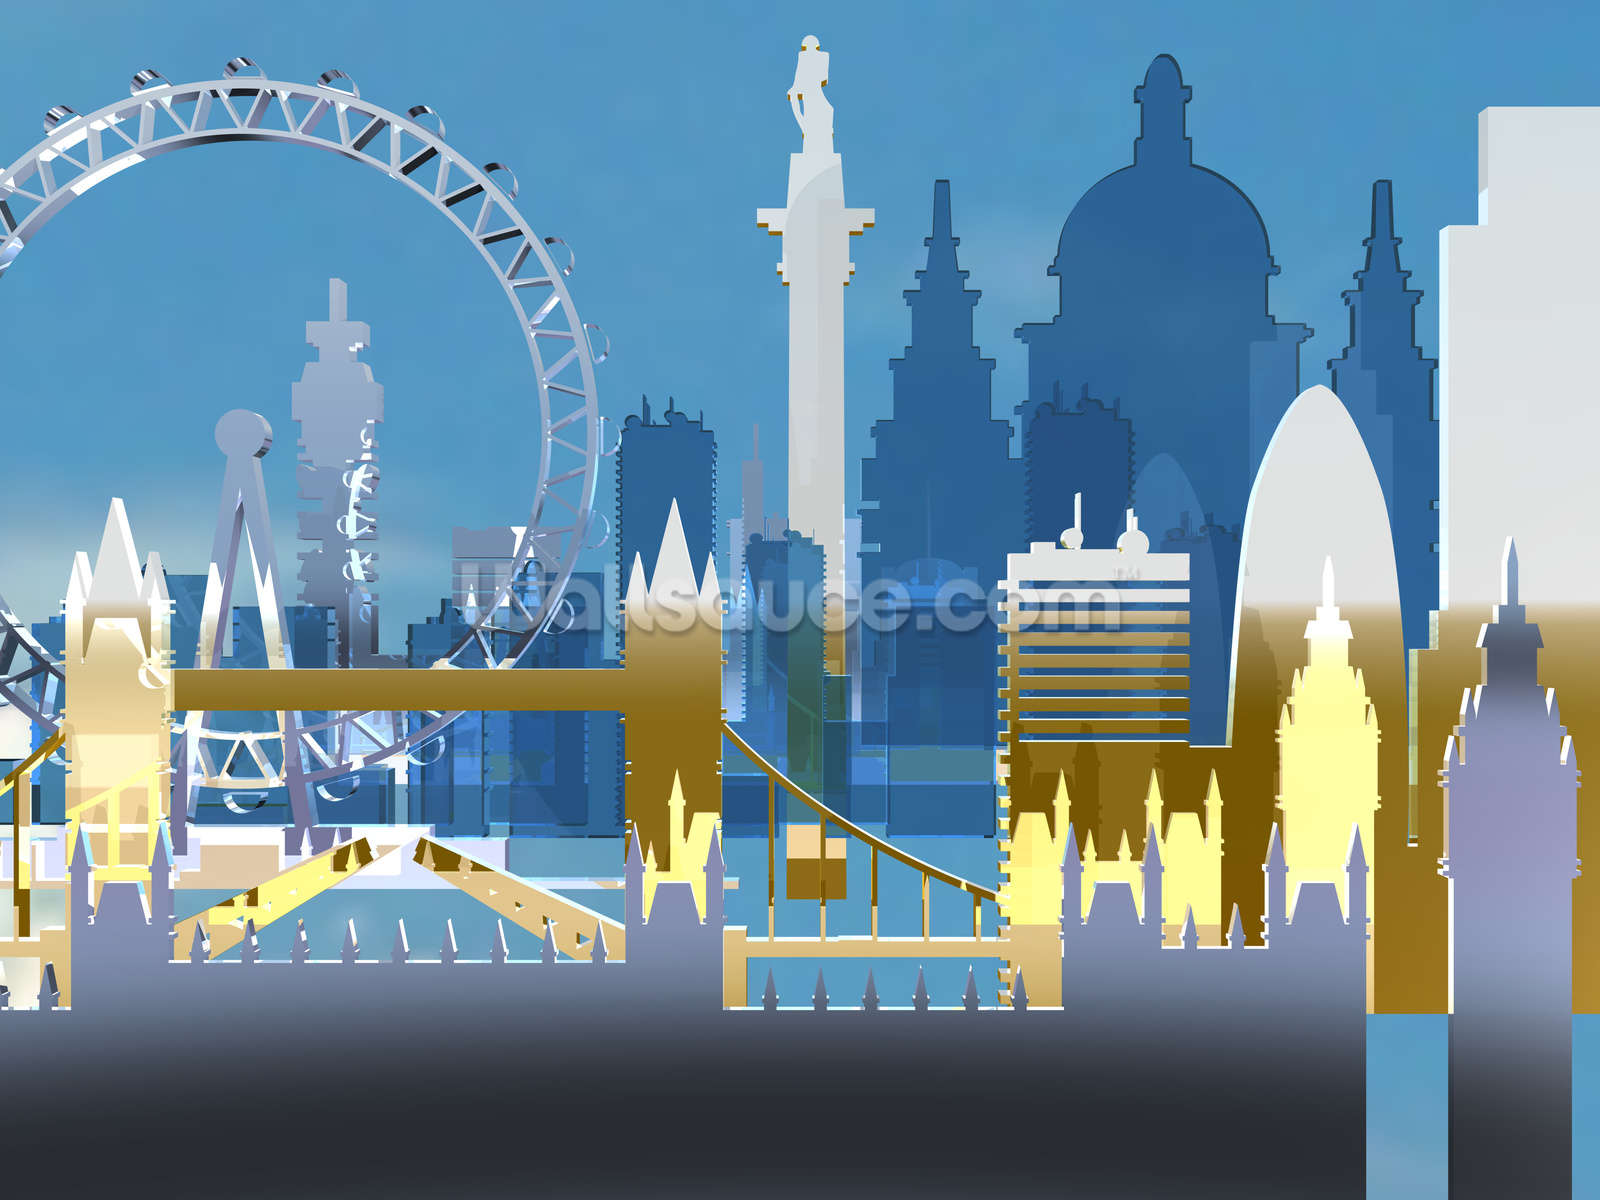 London skyline illustration wallpaper wall mural wallsauce usa london skyline illustration wall mural photo wallpaper amipublicfo Choice Image